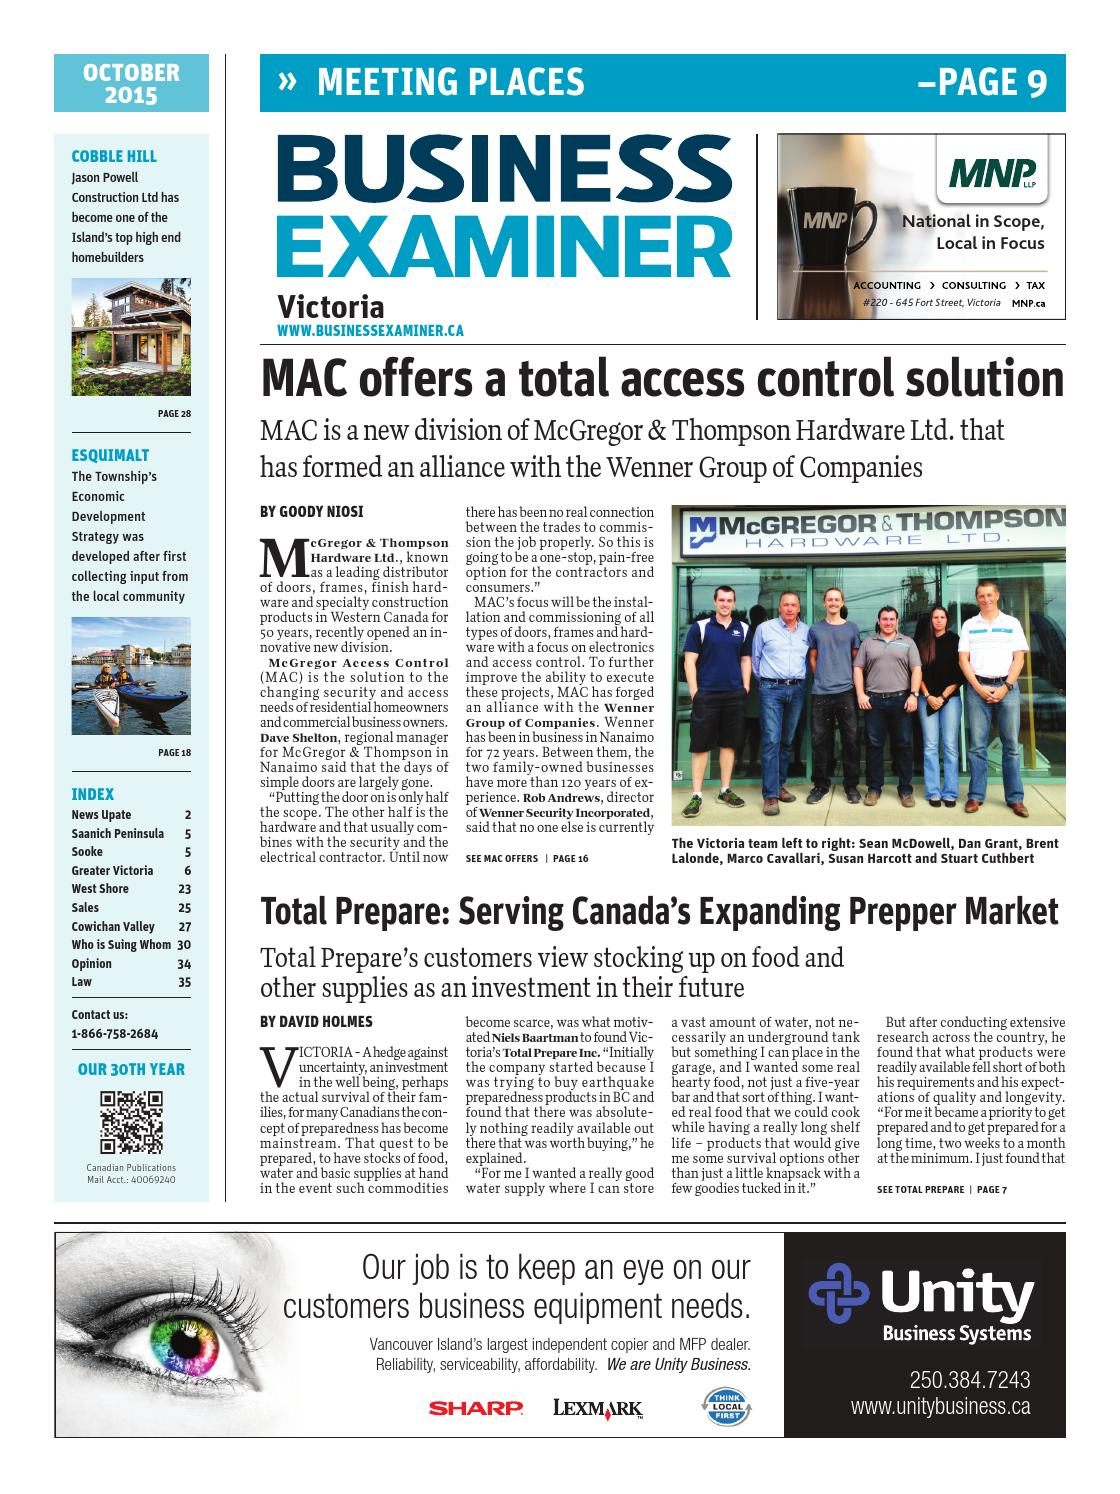 Business examiner victoria october 2015 by business examiner media business examiner victoria october 2015 by business examiner media group issuu nvjuhfo Images